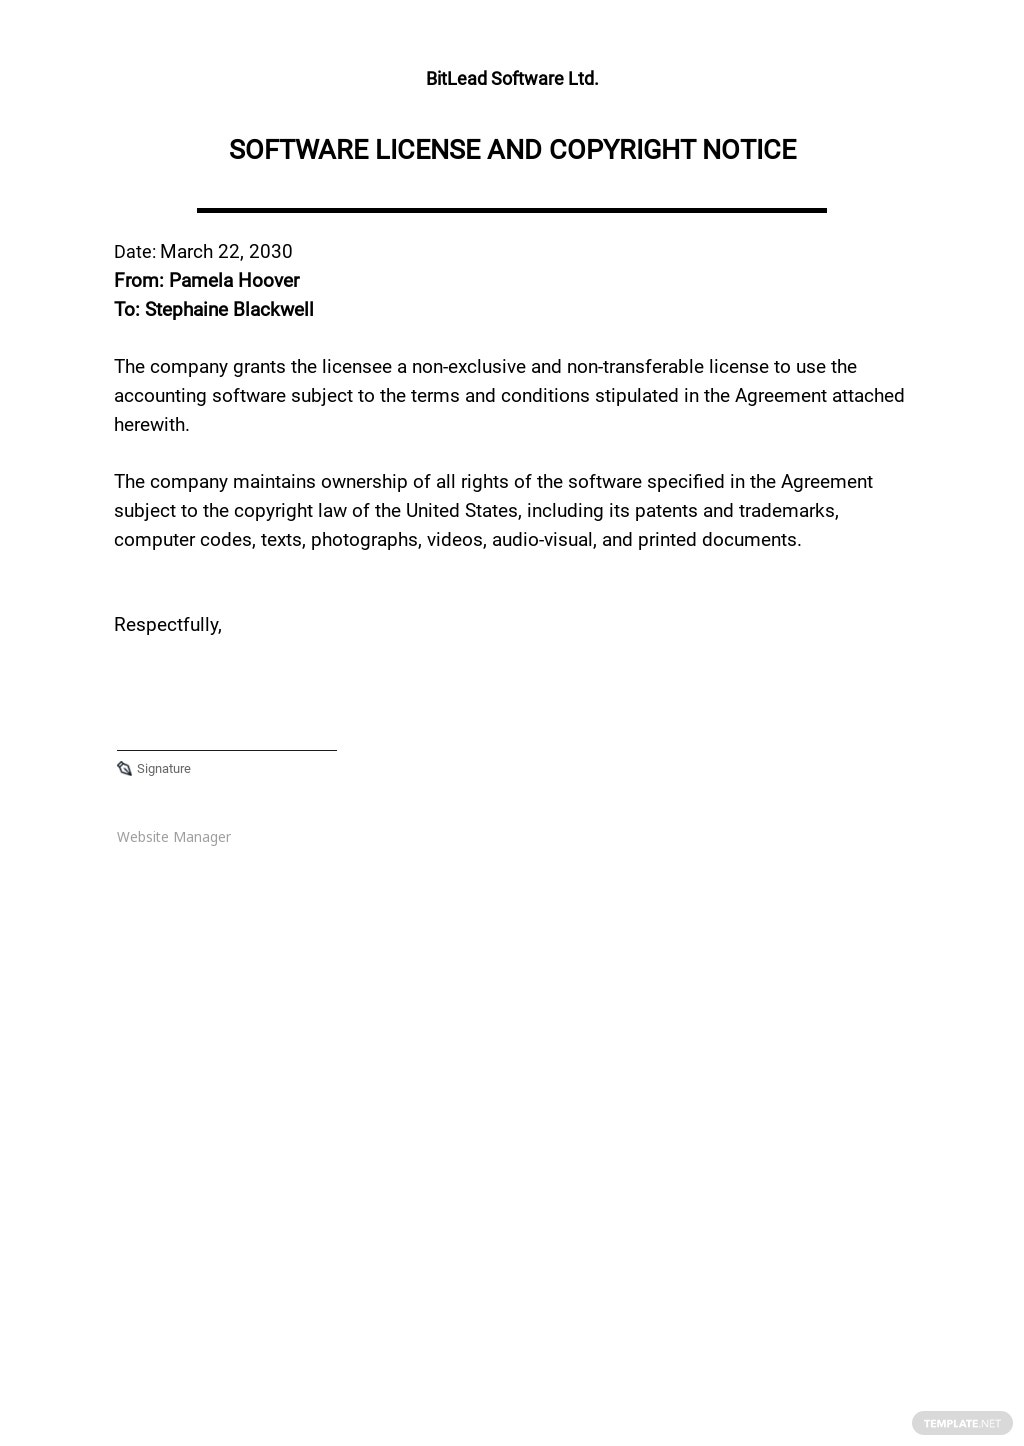 FREE Copyright Agreement Templates in Google Docs   Template.net